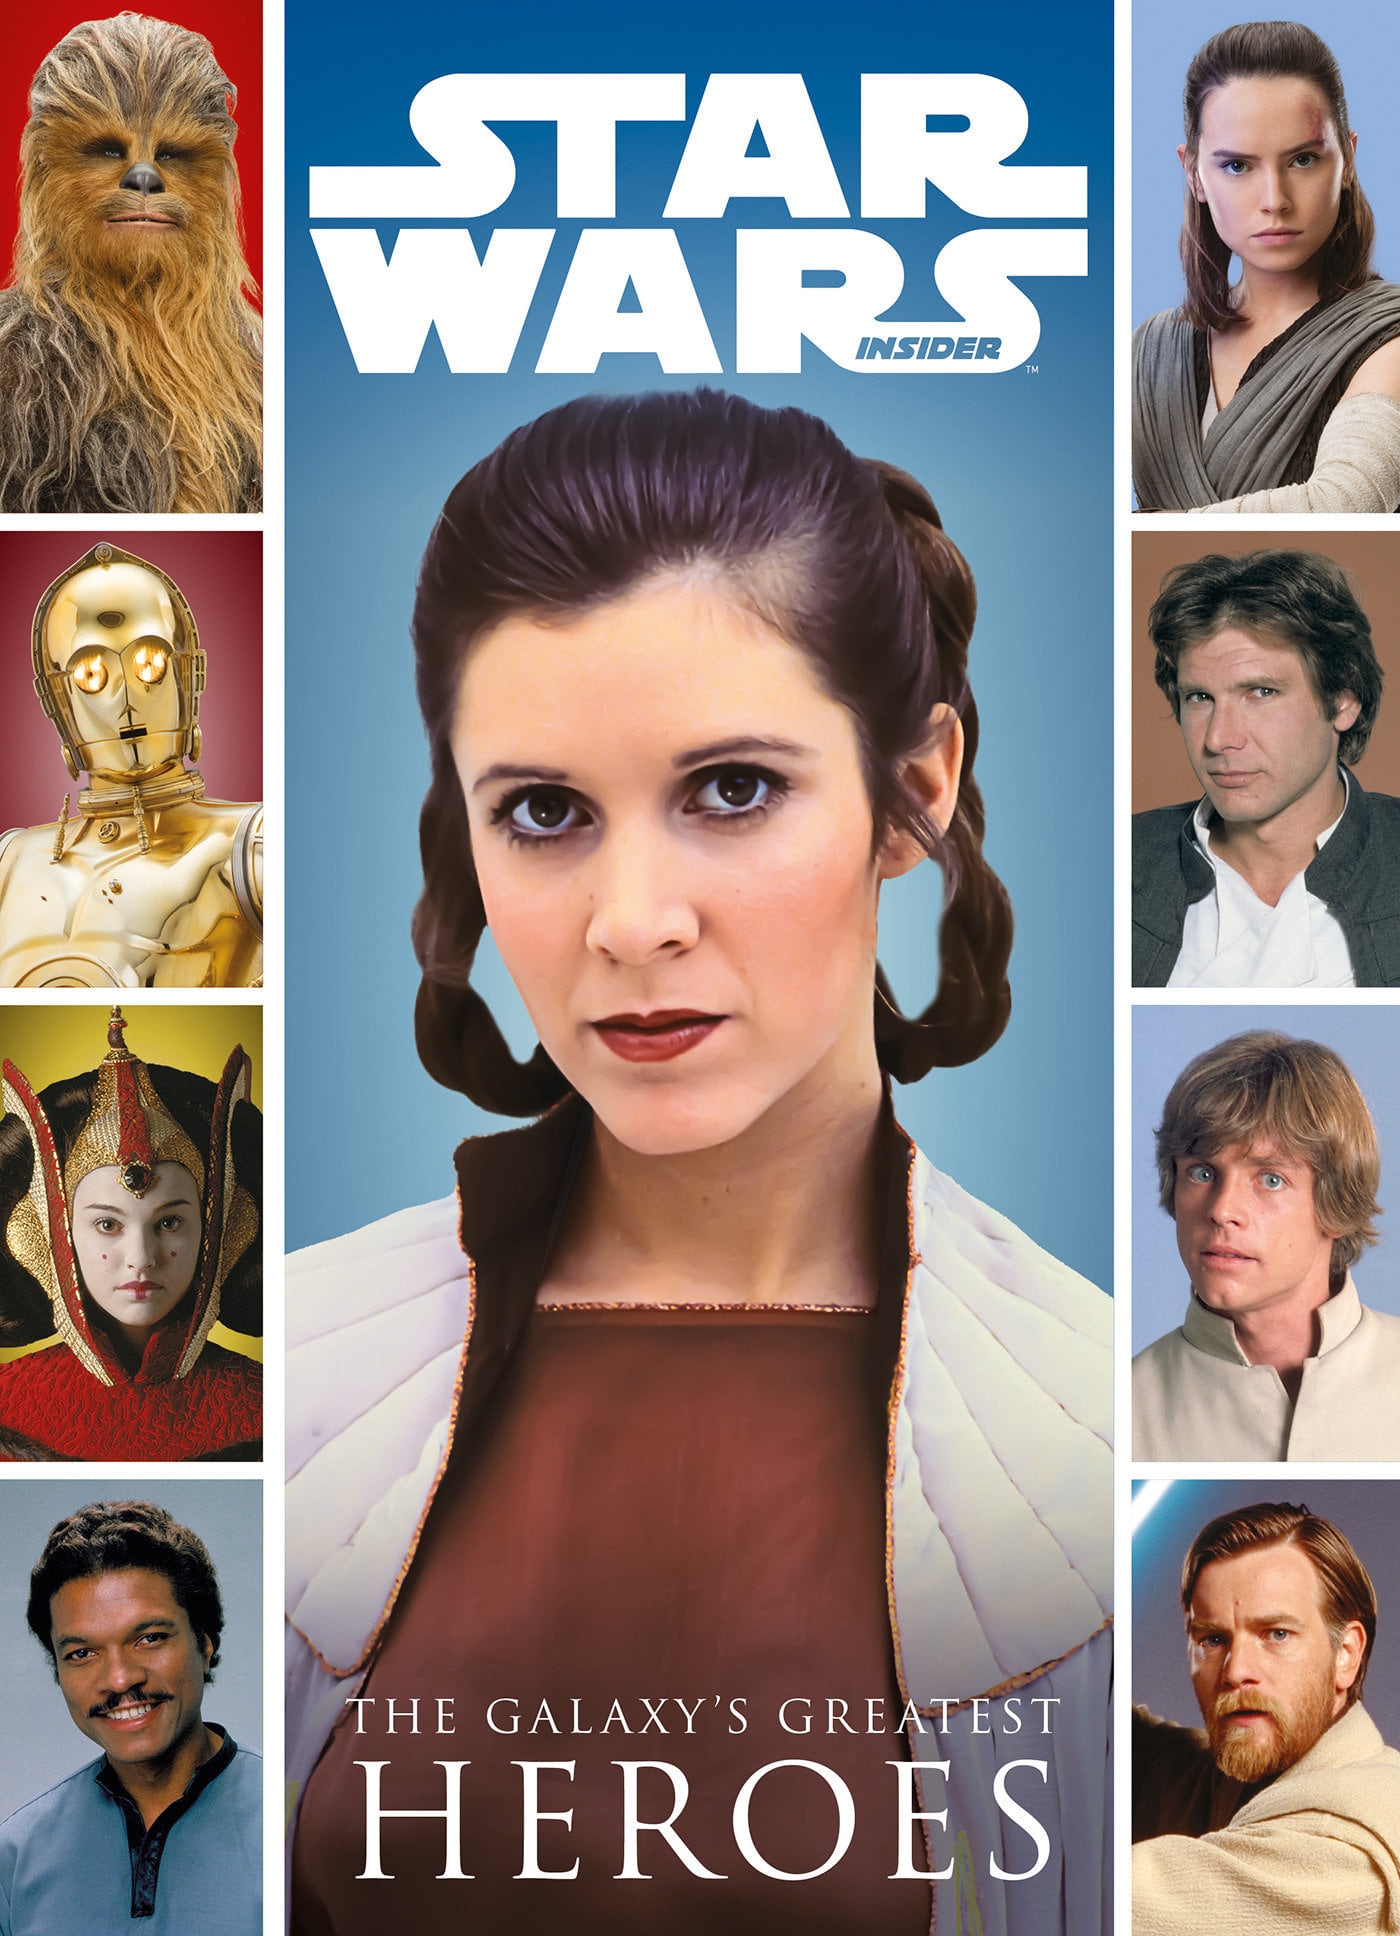 Star Wars Insider: The Galaxy's Greatest Heroes